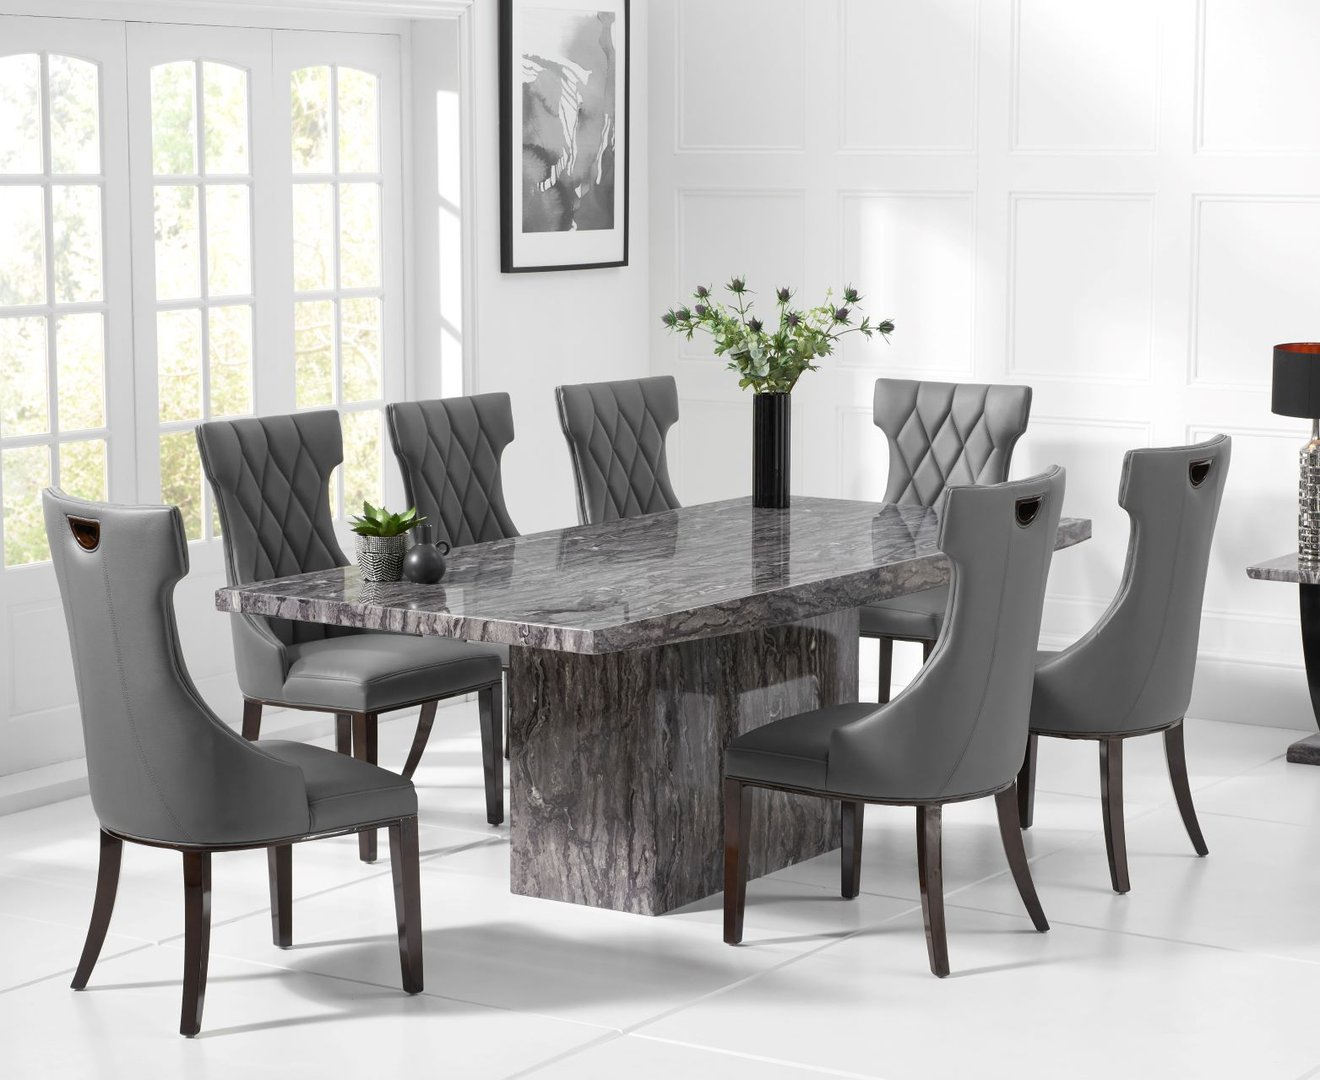 الضباب ما يزال المربي Grey Marble Dining Table Cabuildingbridges Org